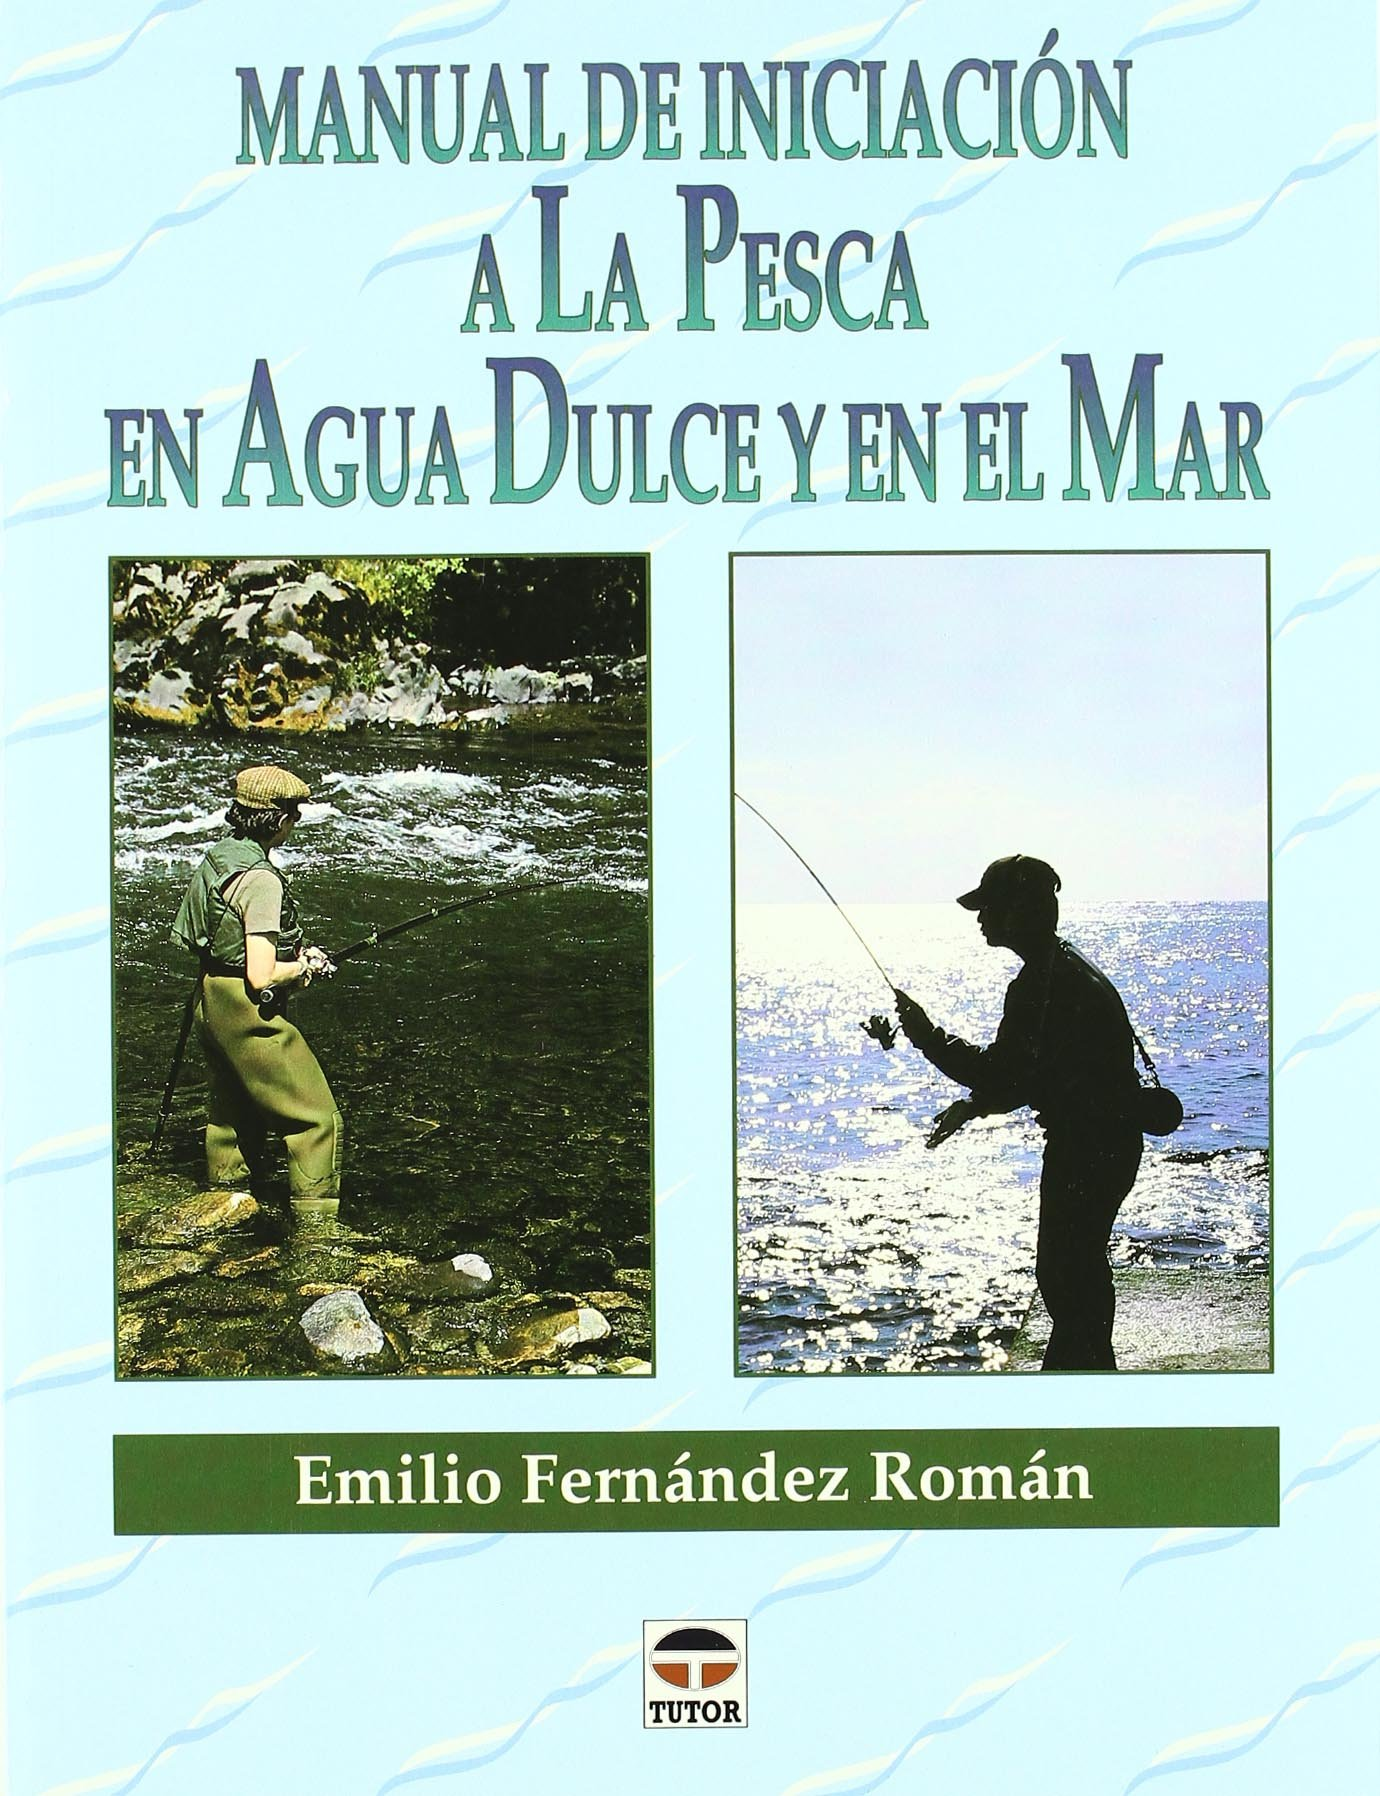 Manual de Iniciacion a Pesca En Agua Dulce y Mar (Spanish Edition) (Spanish) Paperback – September, 2001